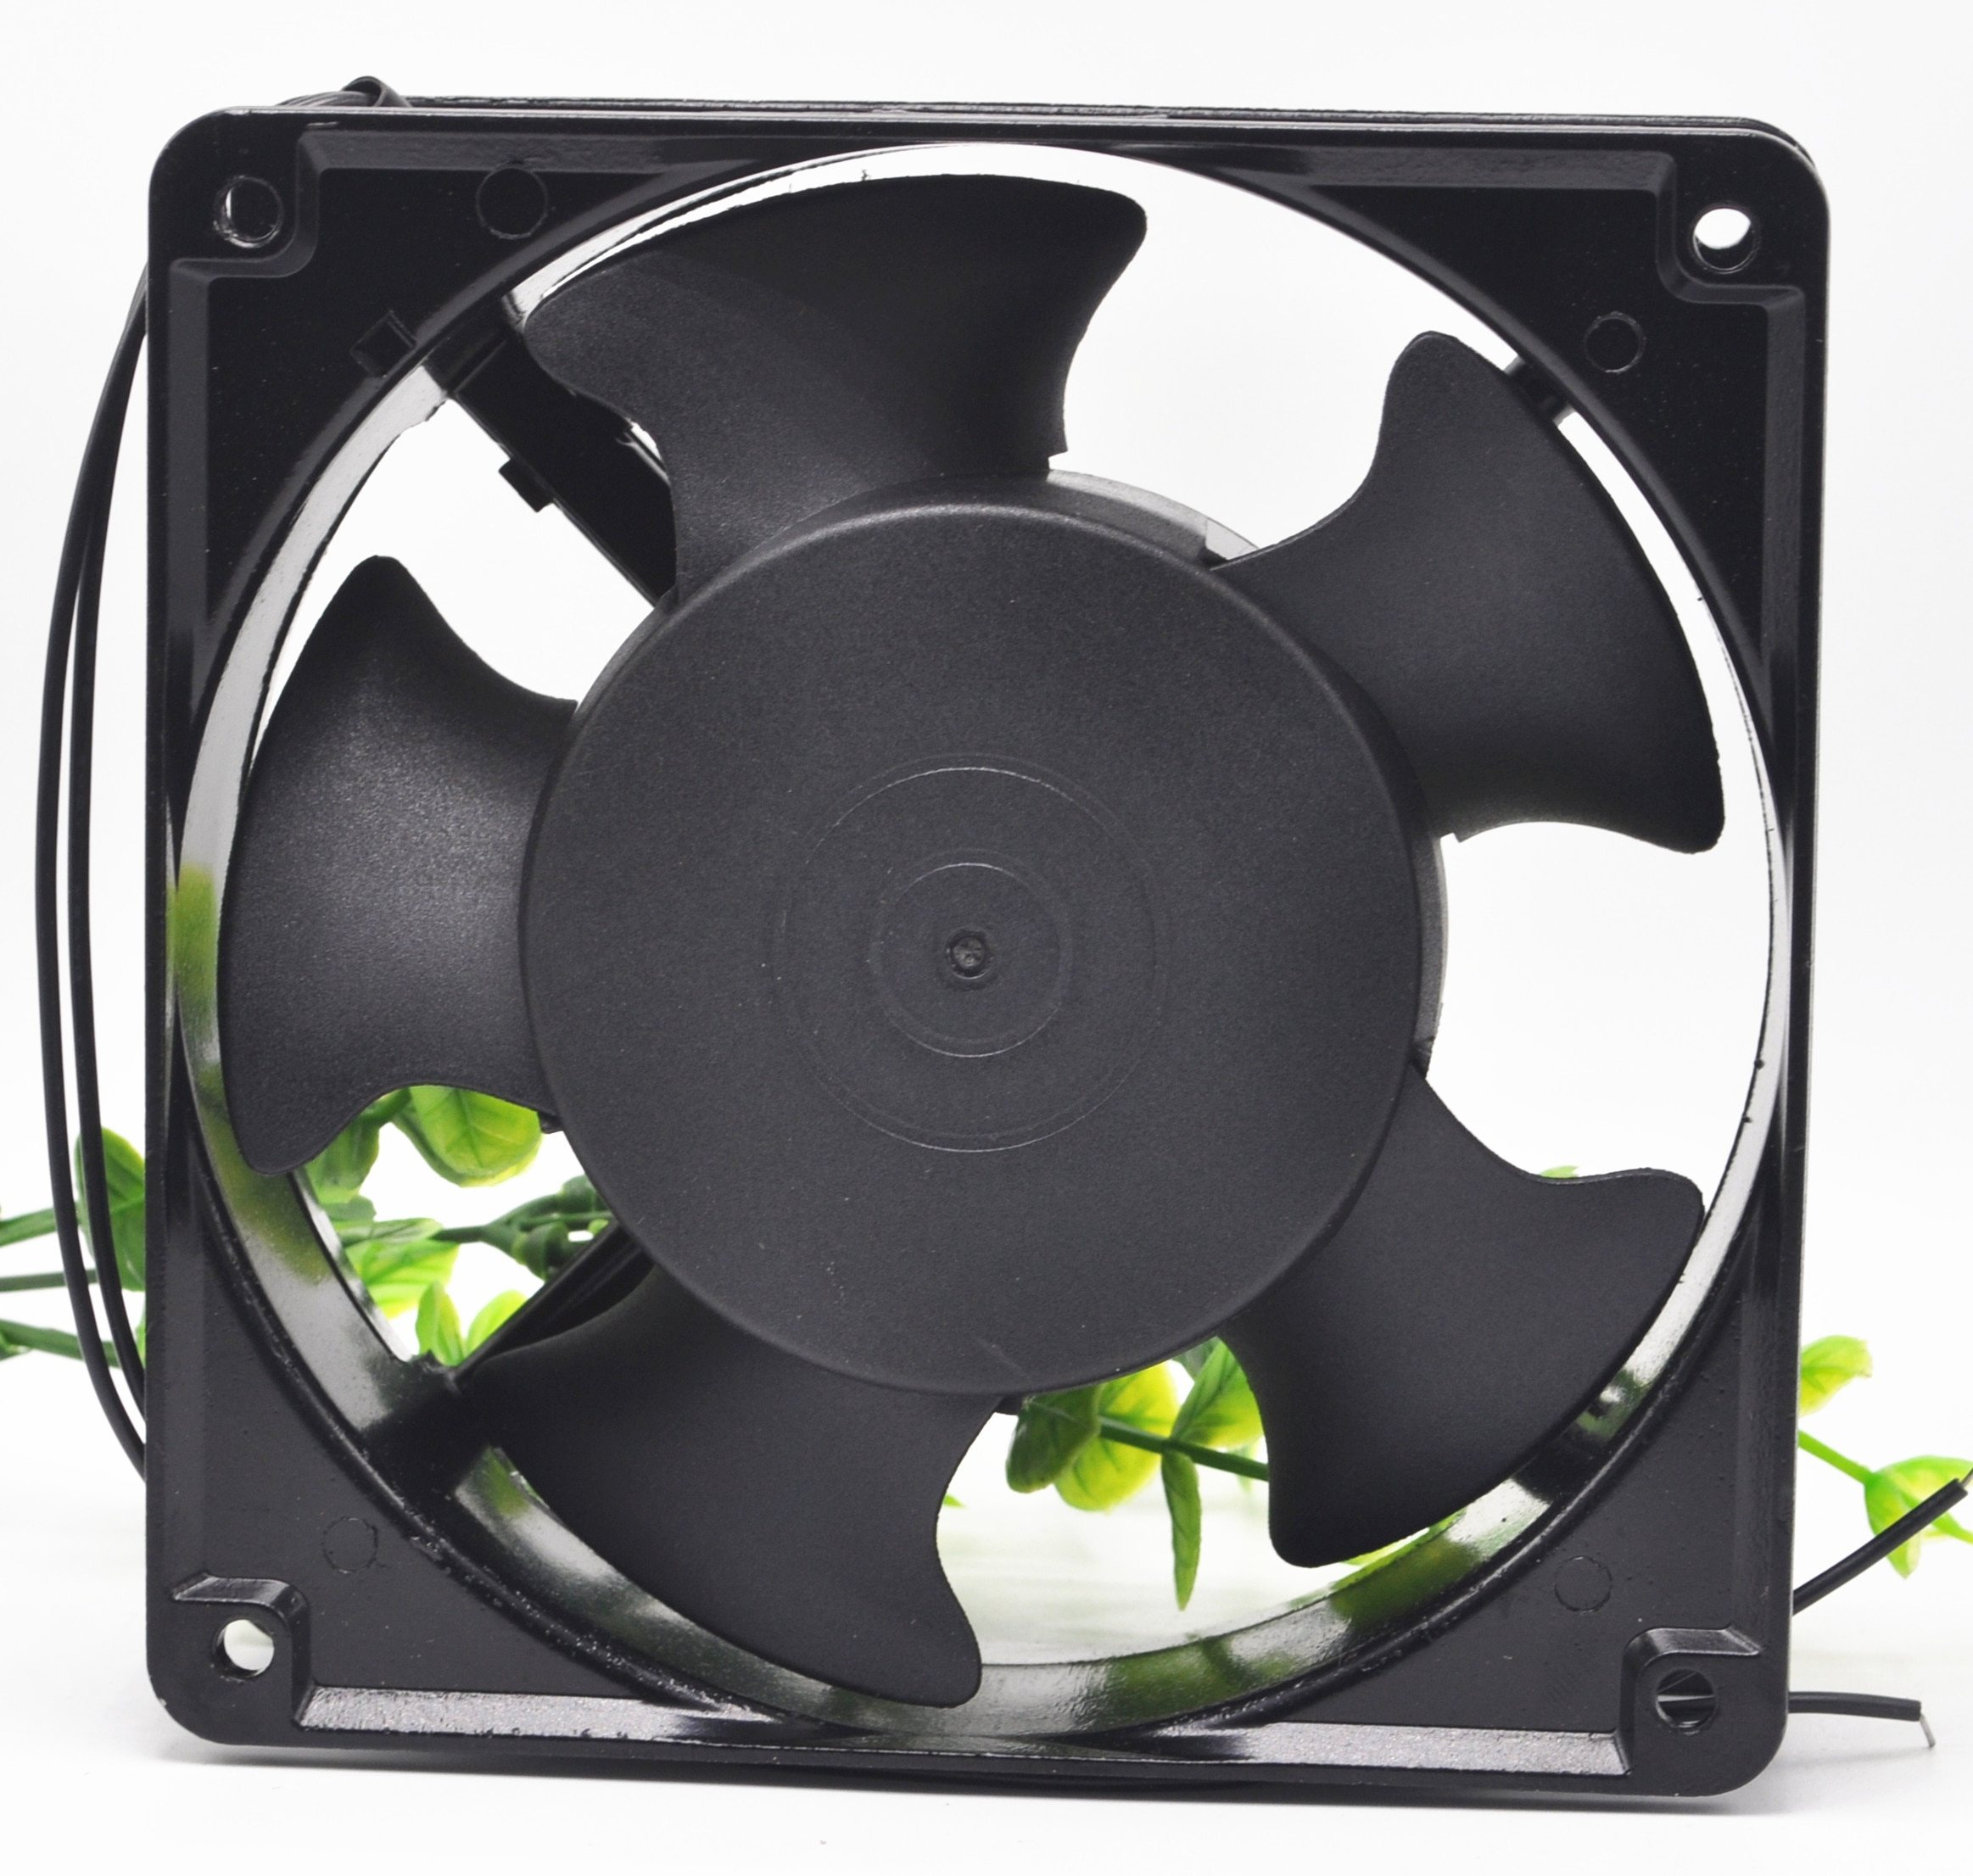 SJ1238HA2 original Taiwan three giant 12038AC220VHA1 110V axial flow cooling fan 380V HA3 1